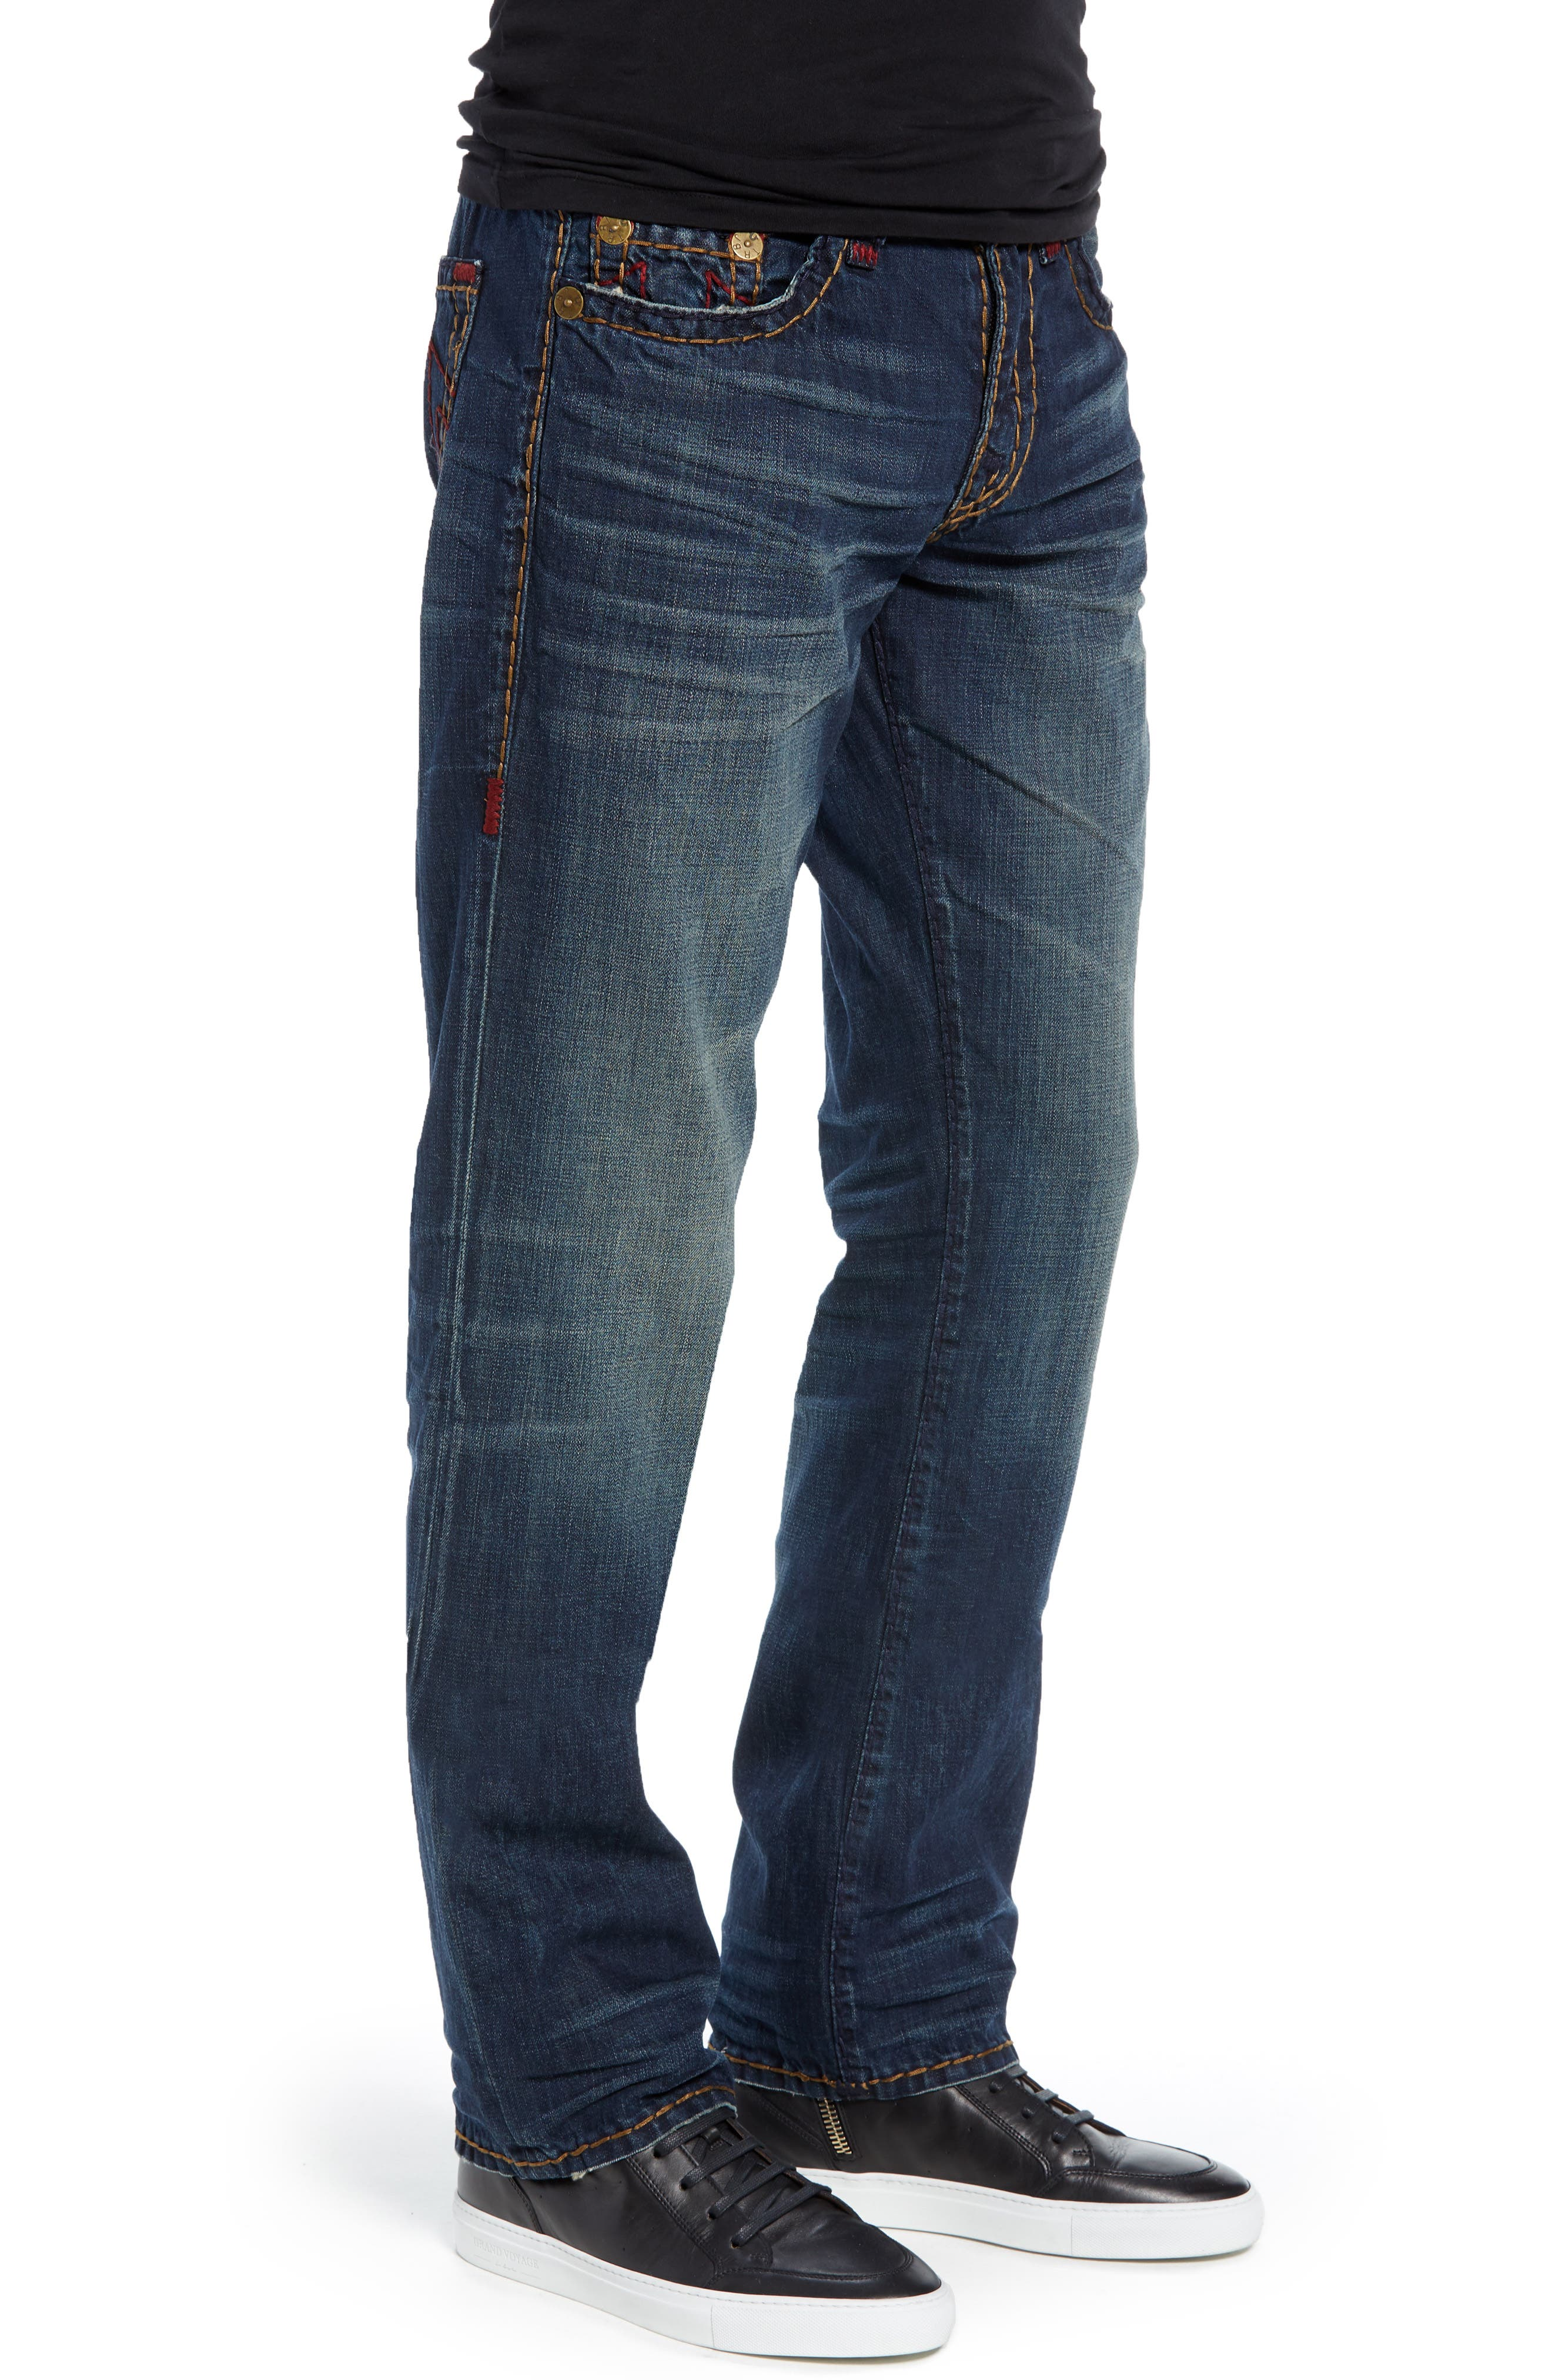 Ricky Skinny Fit Jeans,                             Alternate thumbnail 3, color,                             DARK MONORAIL